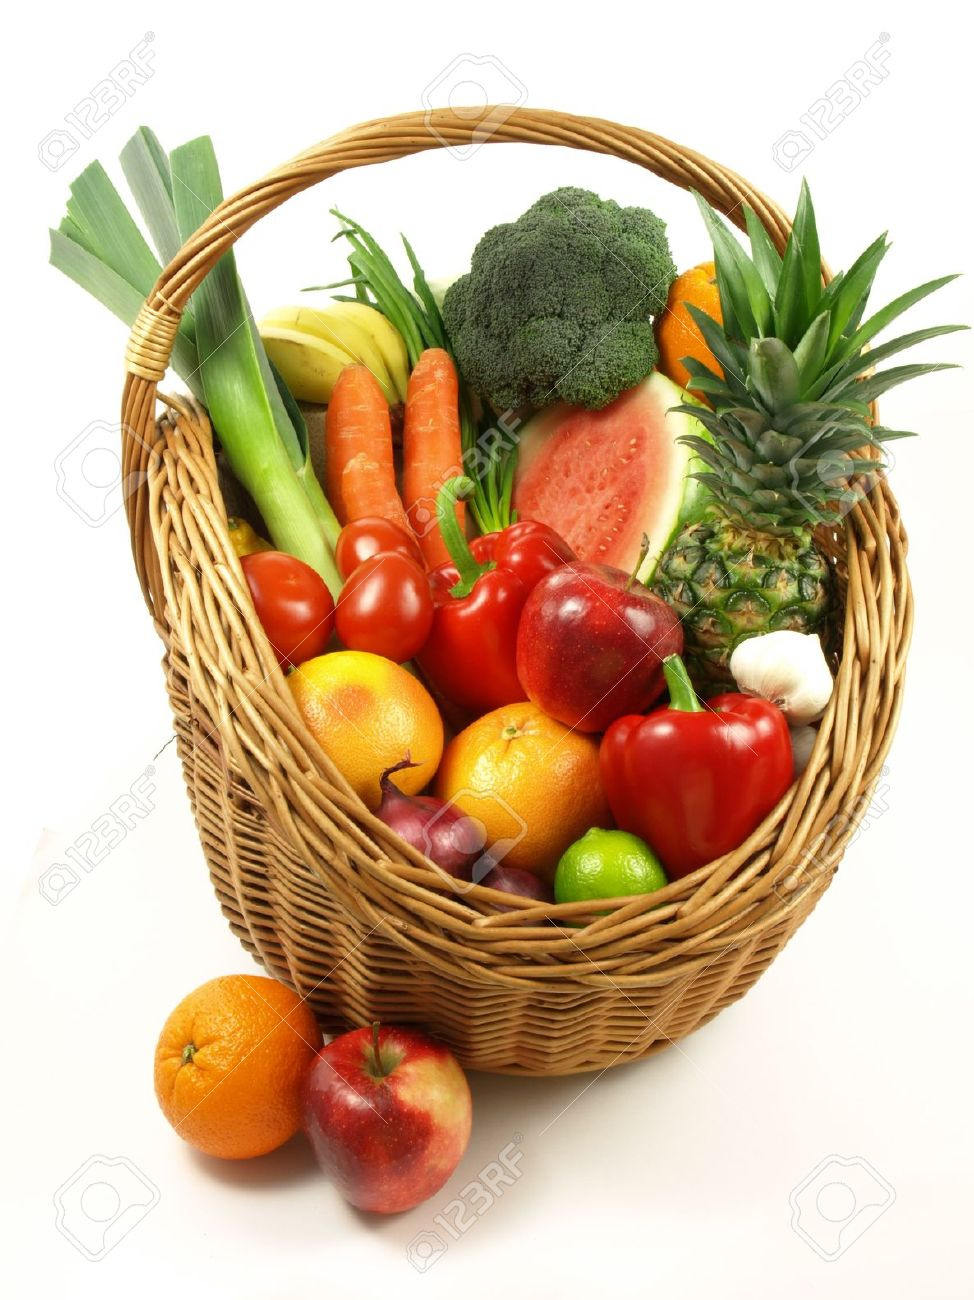 Weekly Fruits and Vegetables Package